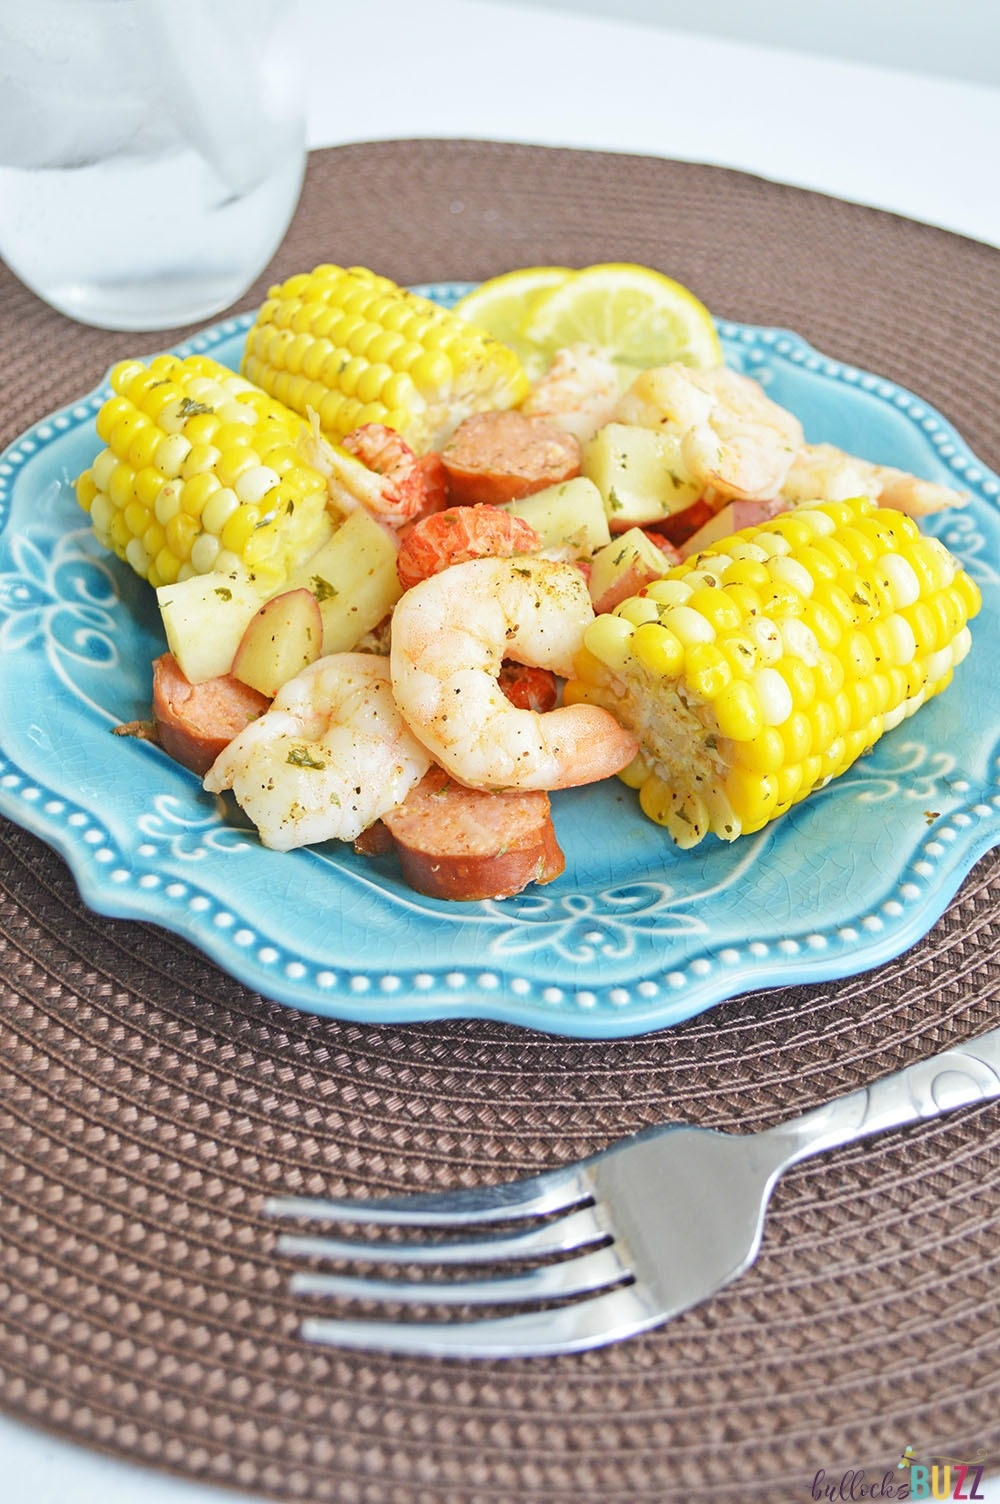 Filled with shrimp, crawfish, sausage, corn, and potatoes, these easy Cajun Seafood Boil Foil Packets are packed with flavor and have just the right amount of heat.